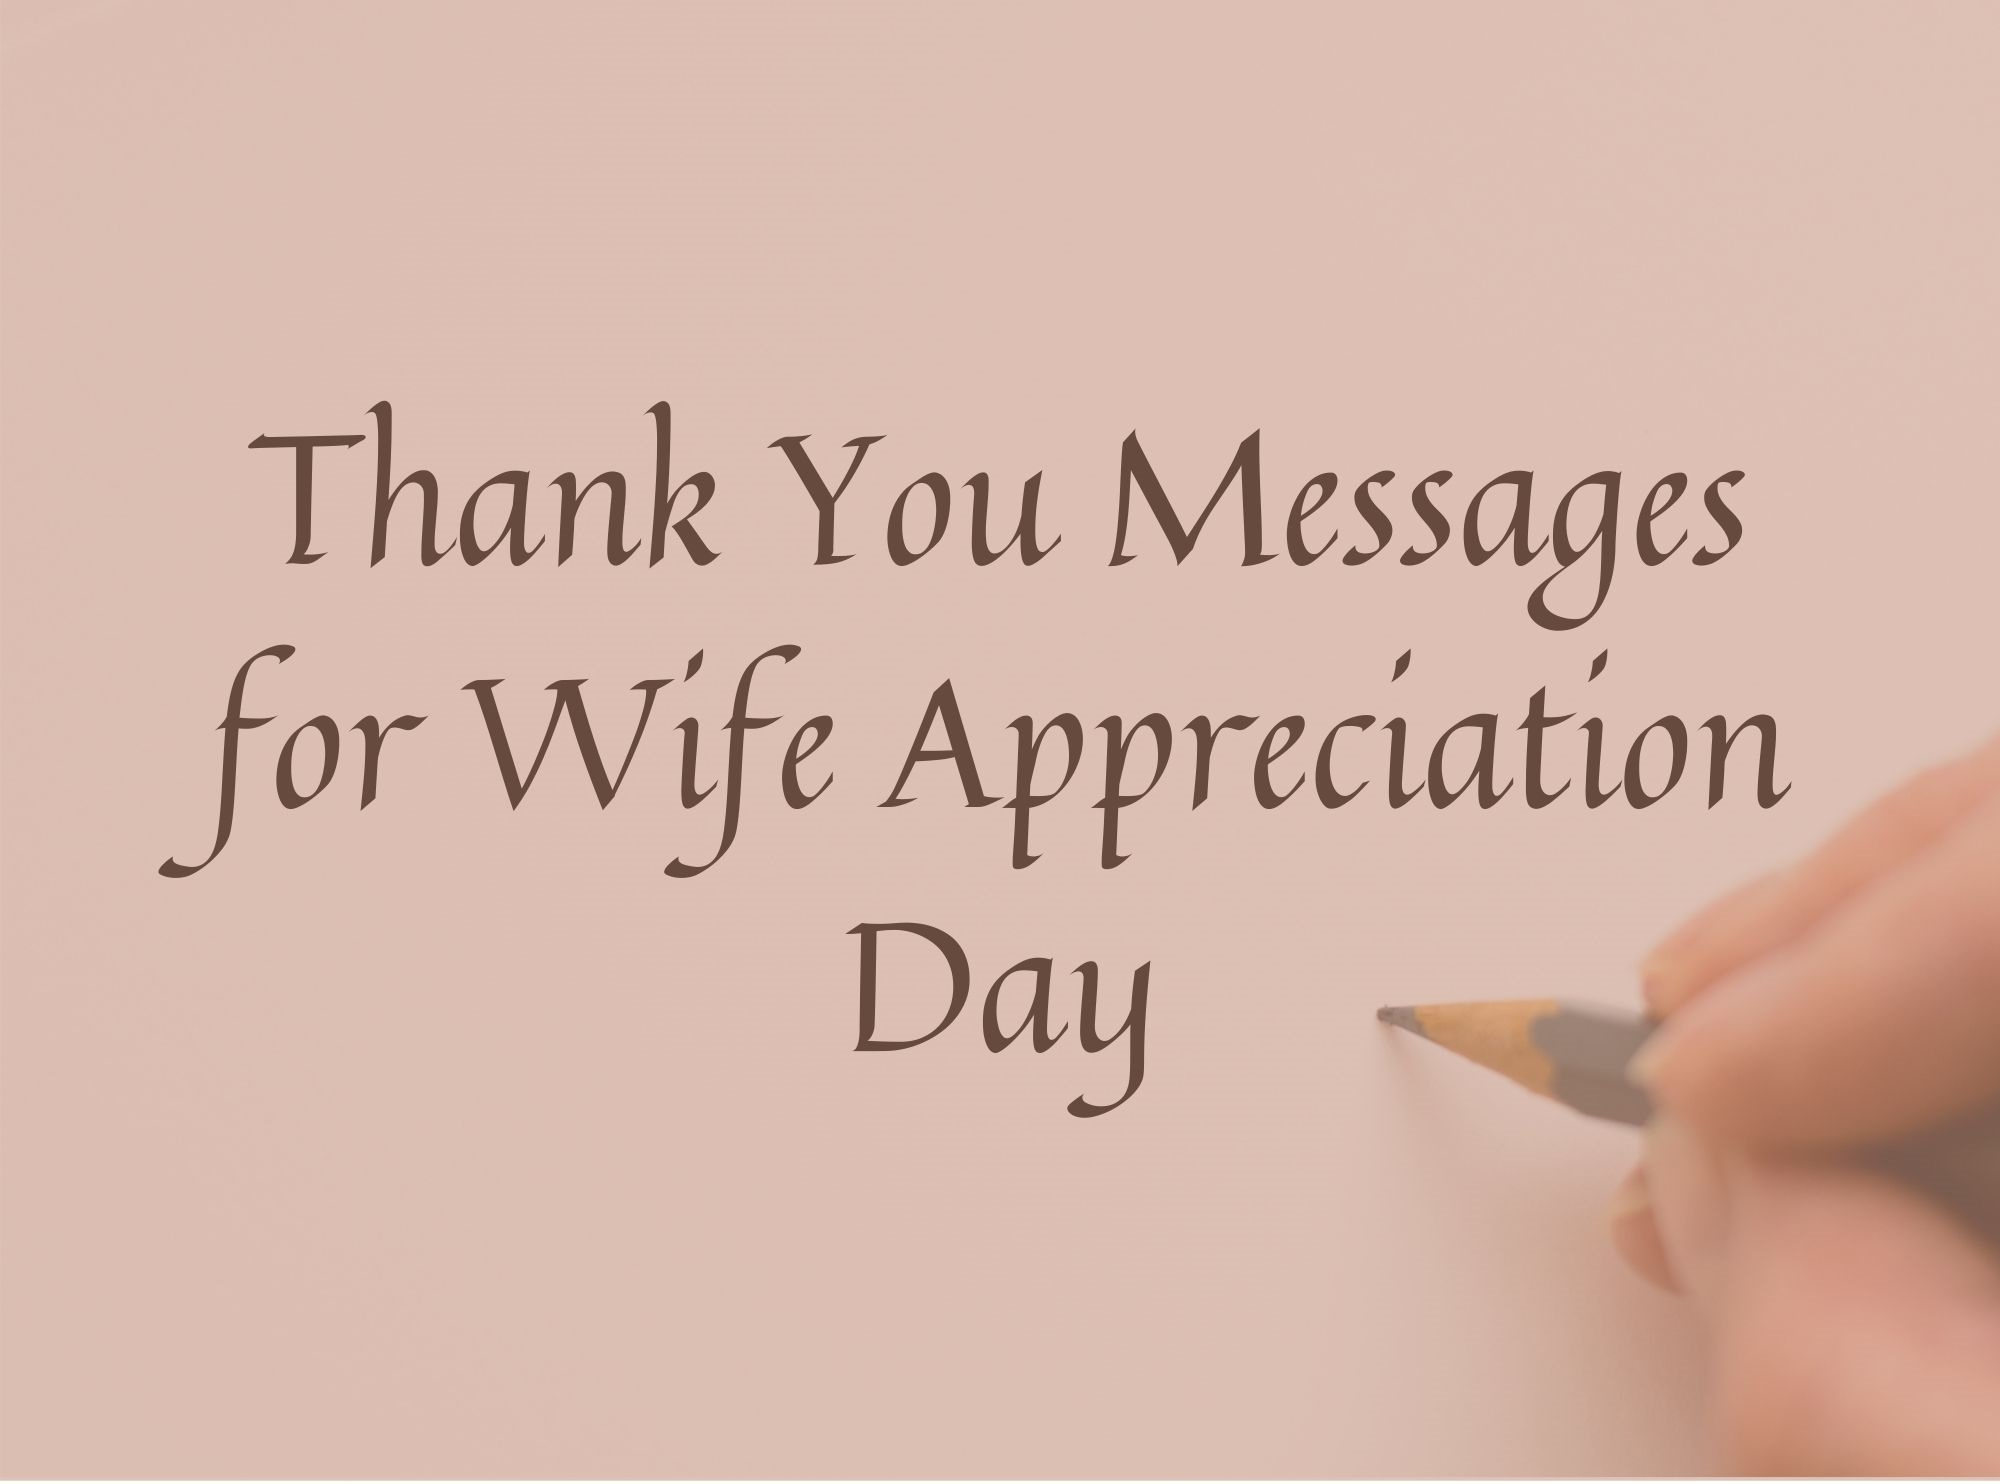 Thank You Messages for Wife Appreciation Day